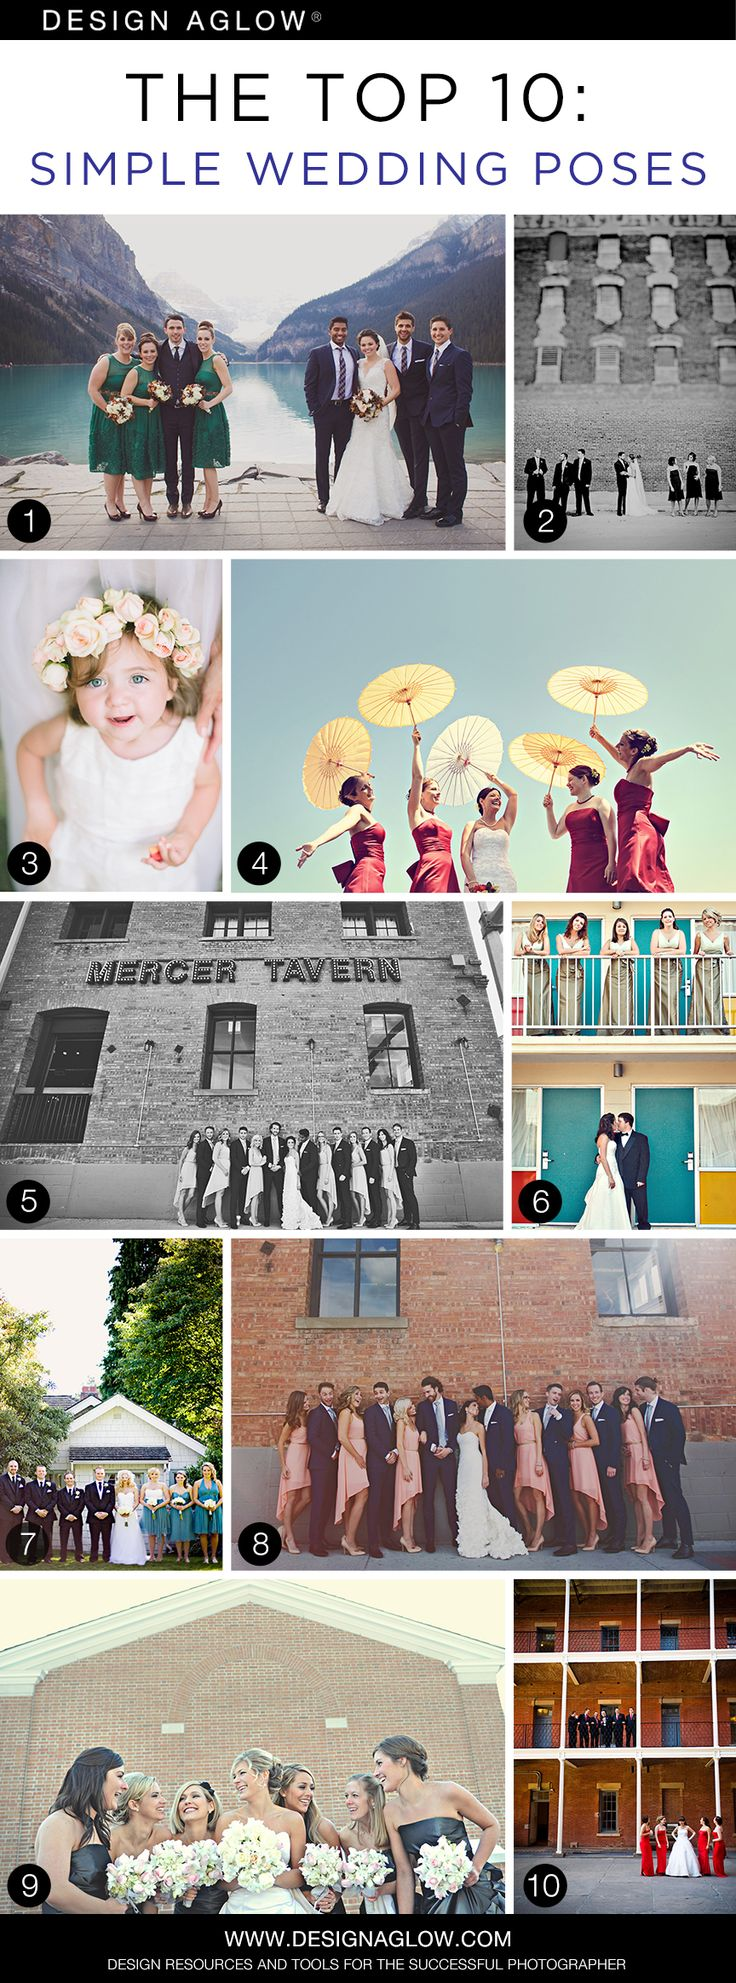 The Top 10: Simple Wedding Poses